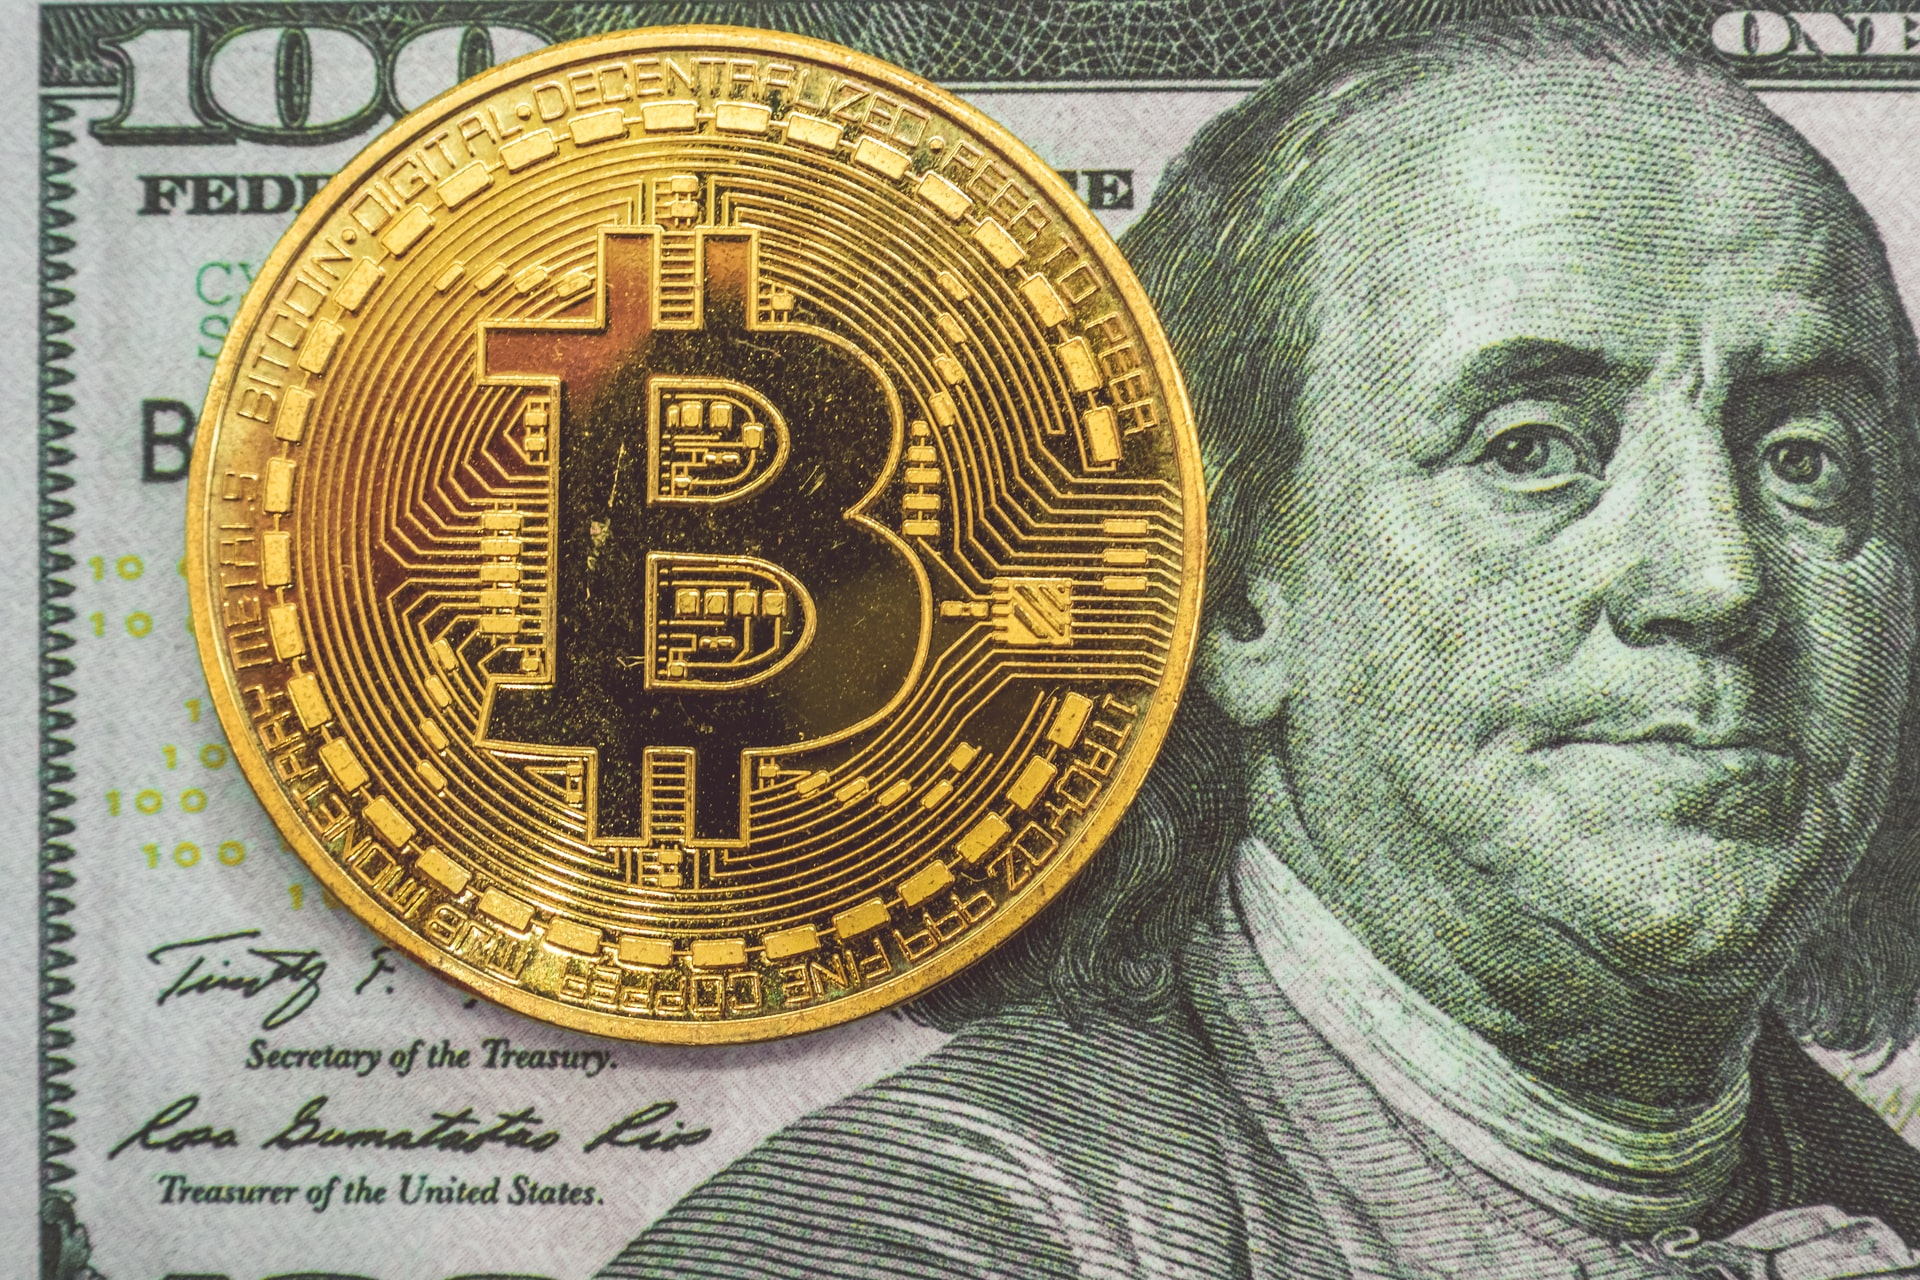 Publicly traded companies move more cash reserves into Bitcoin